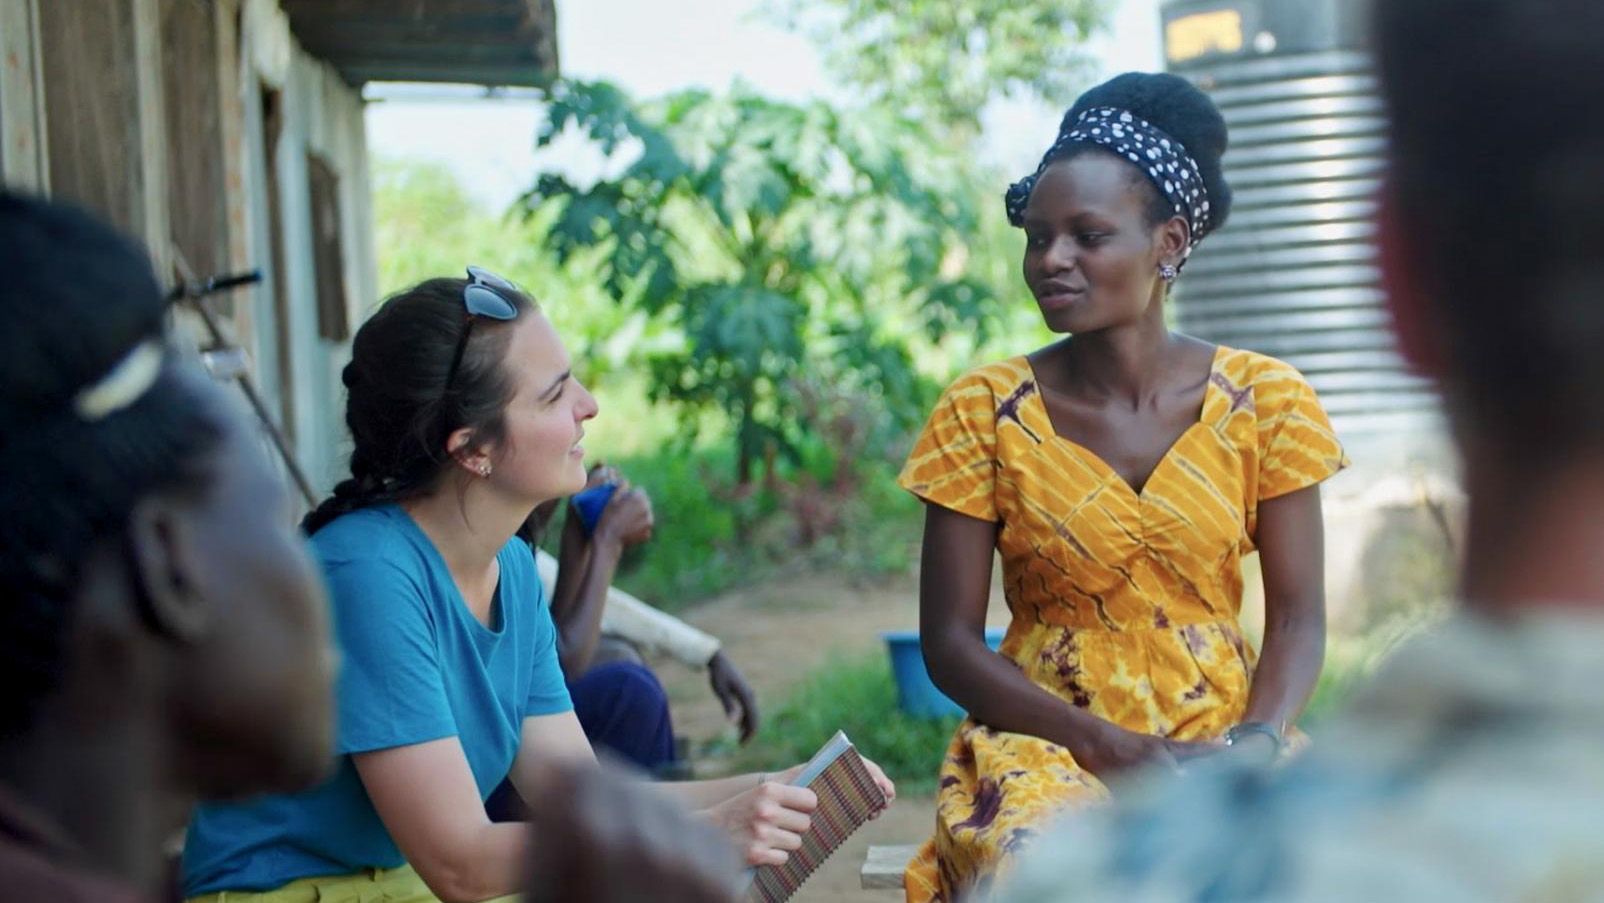 UNSW student talking to a women in Africa